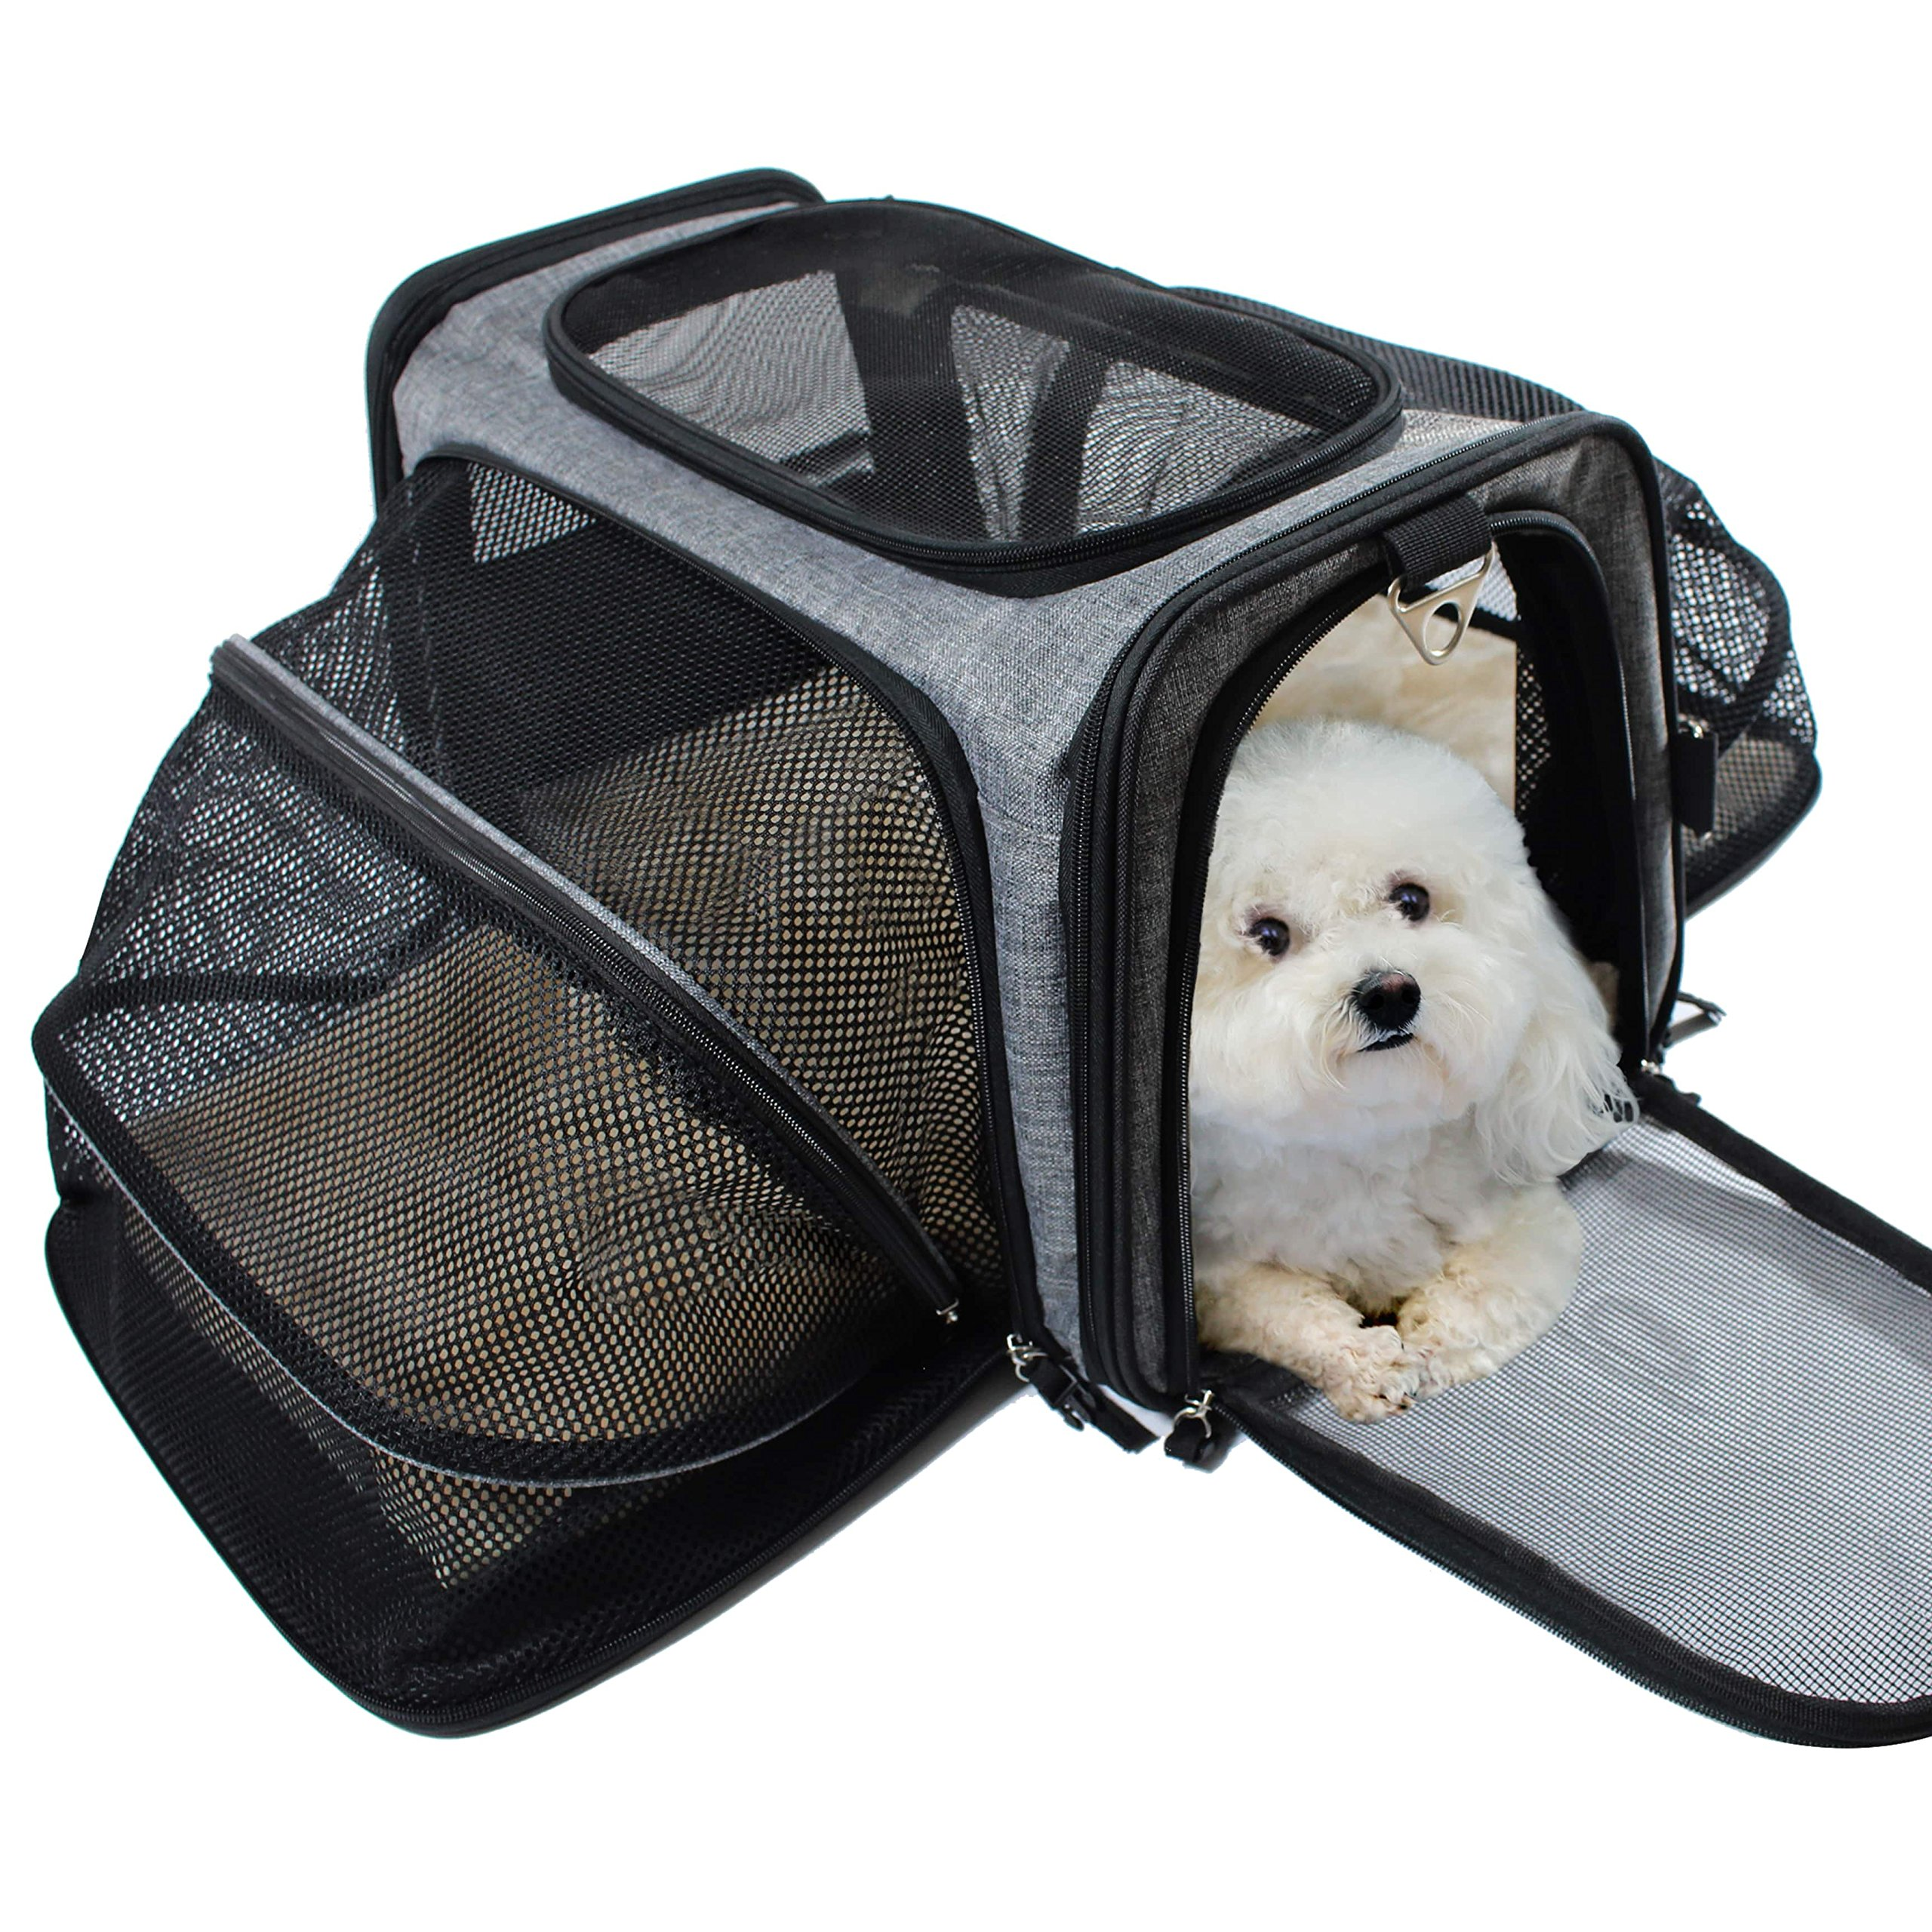 Pet Carrier for Dogs & Cats - Airline Approved Expandable waterproof Soft Animal Carriers -Portable Soft-Sided Air Travel Bag- Eco-friendly material Roomy With a Side Pocket and a Fleece Bed